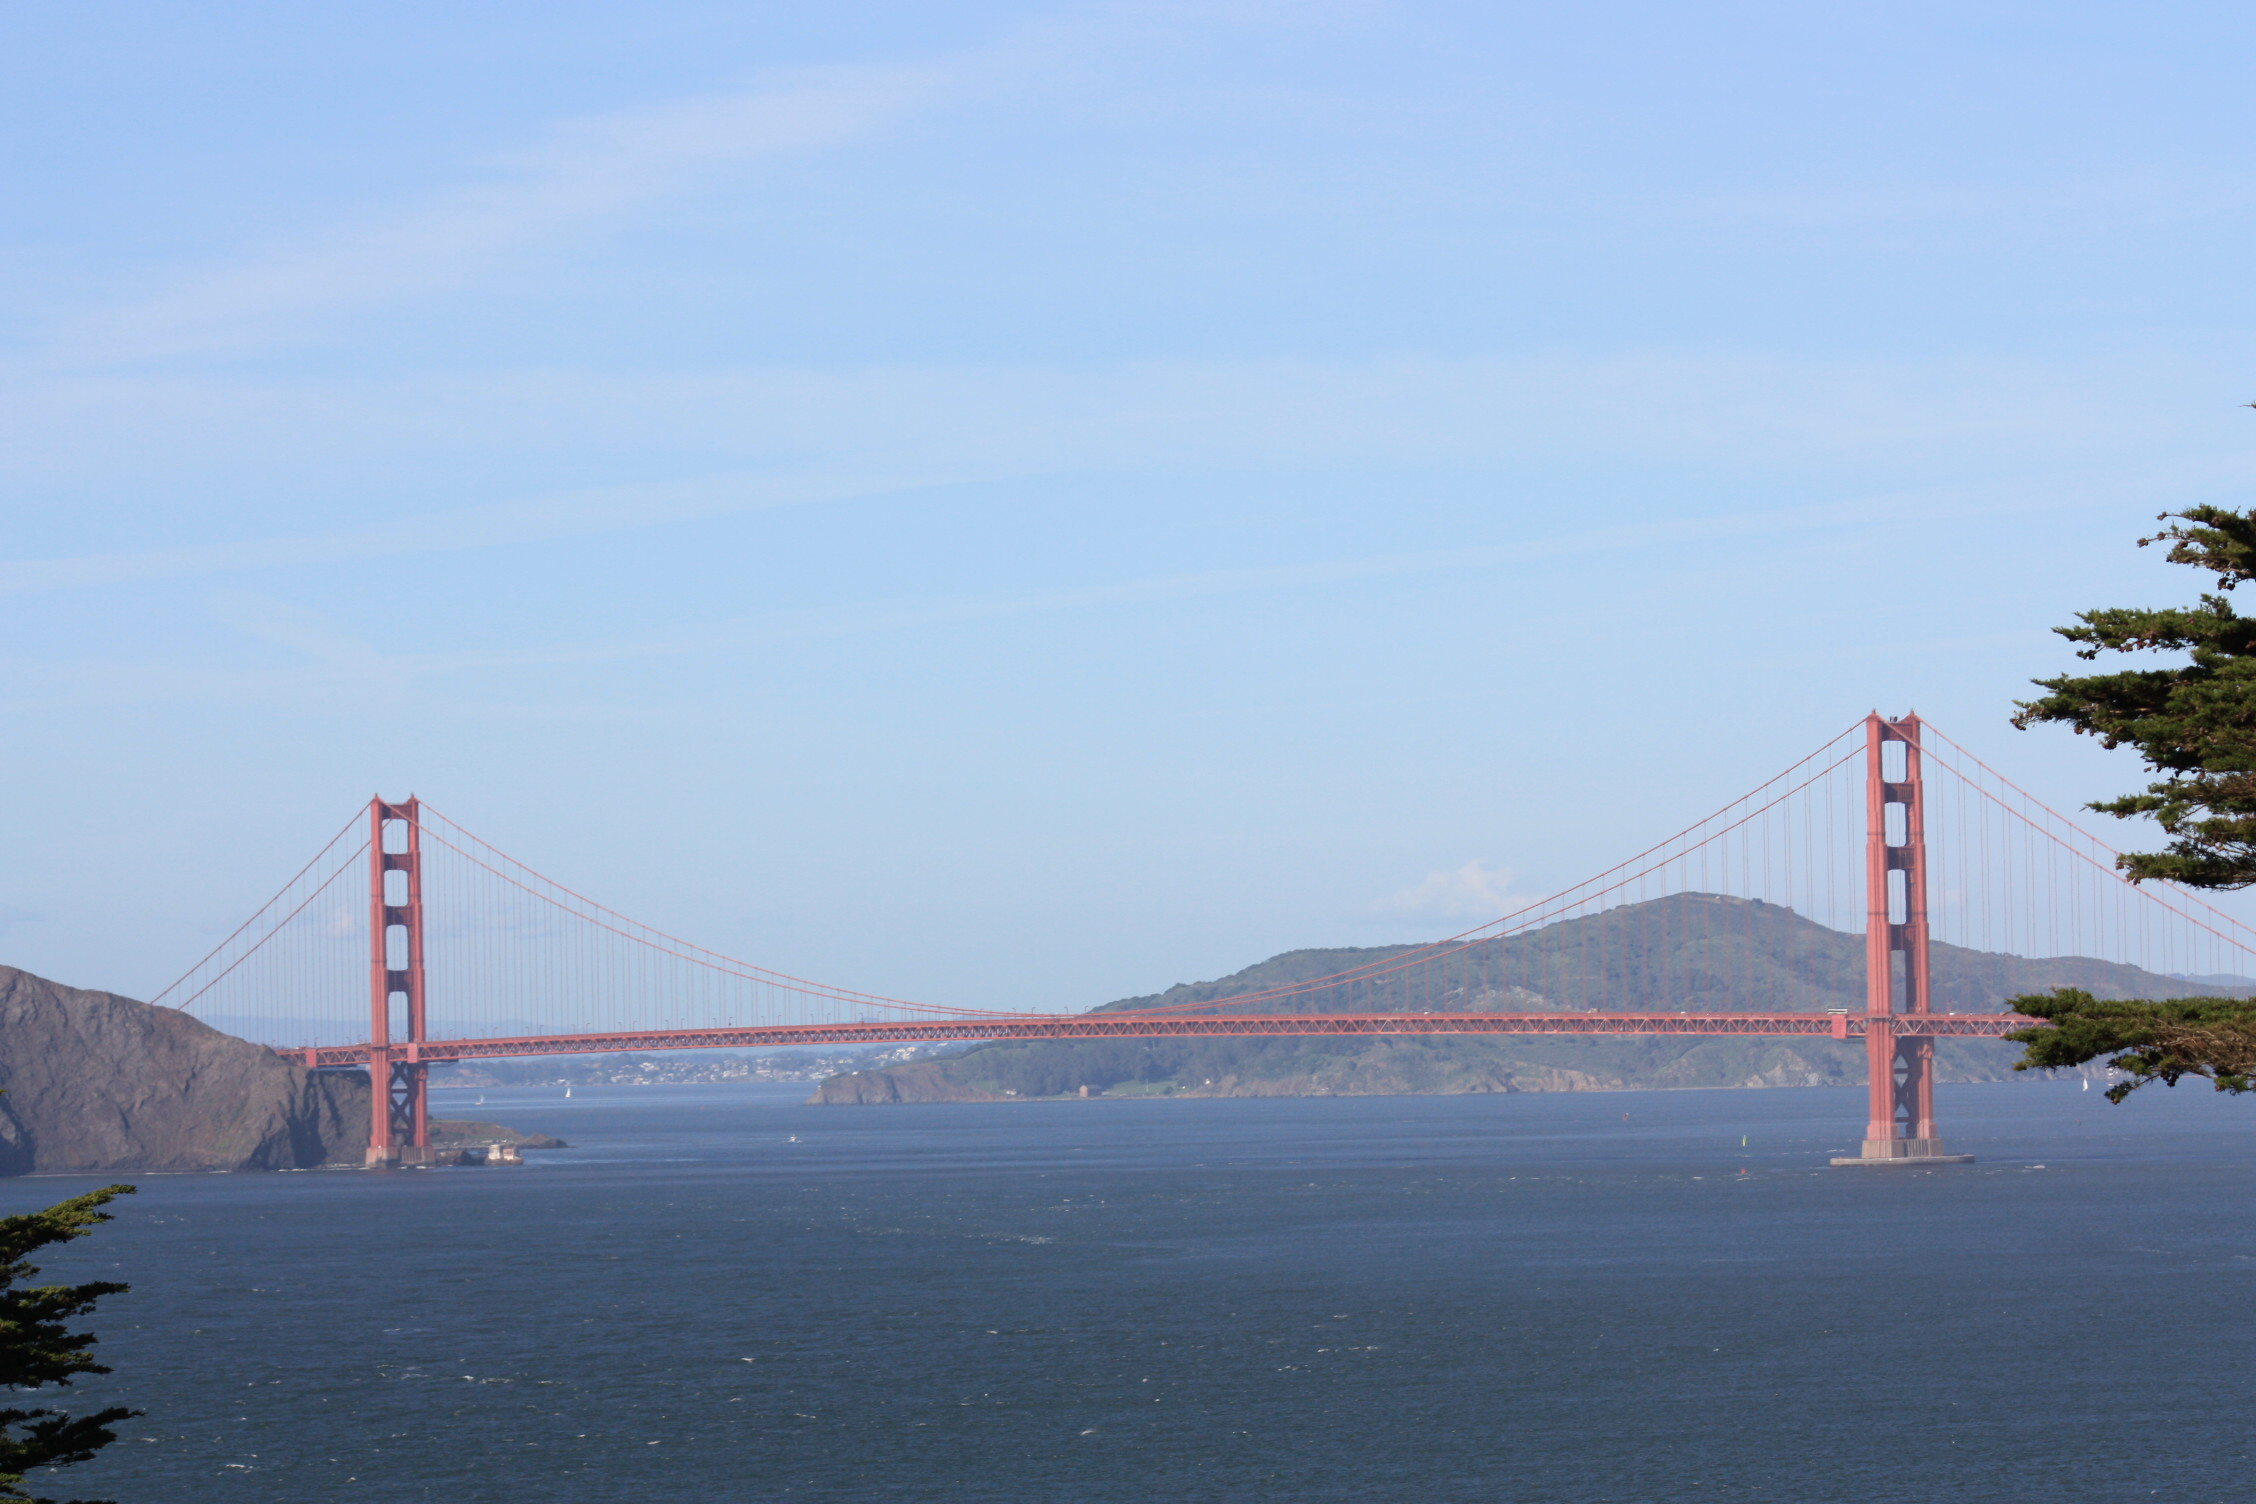 Golden Gate Bridge as seen from Lands End